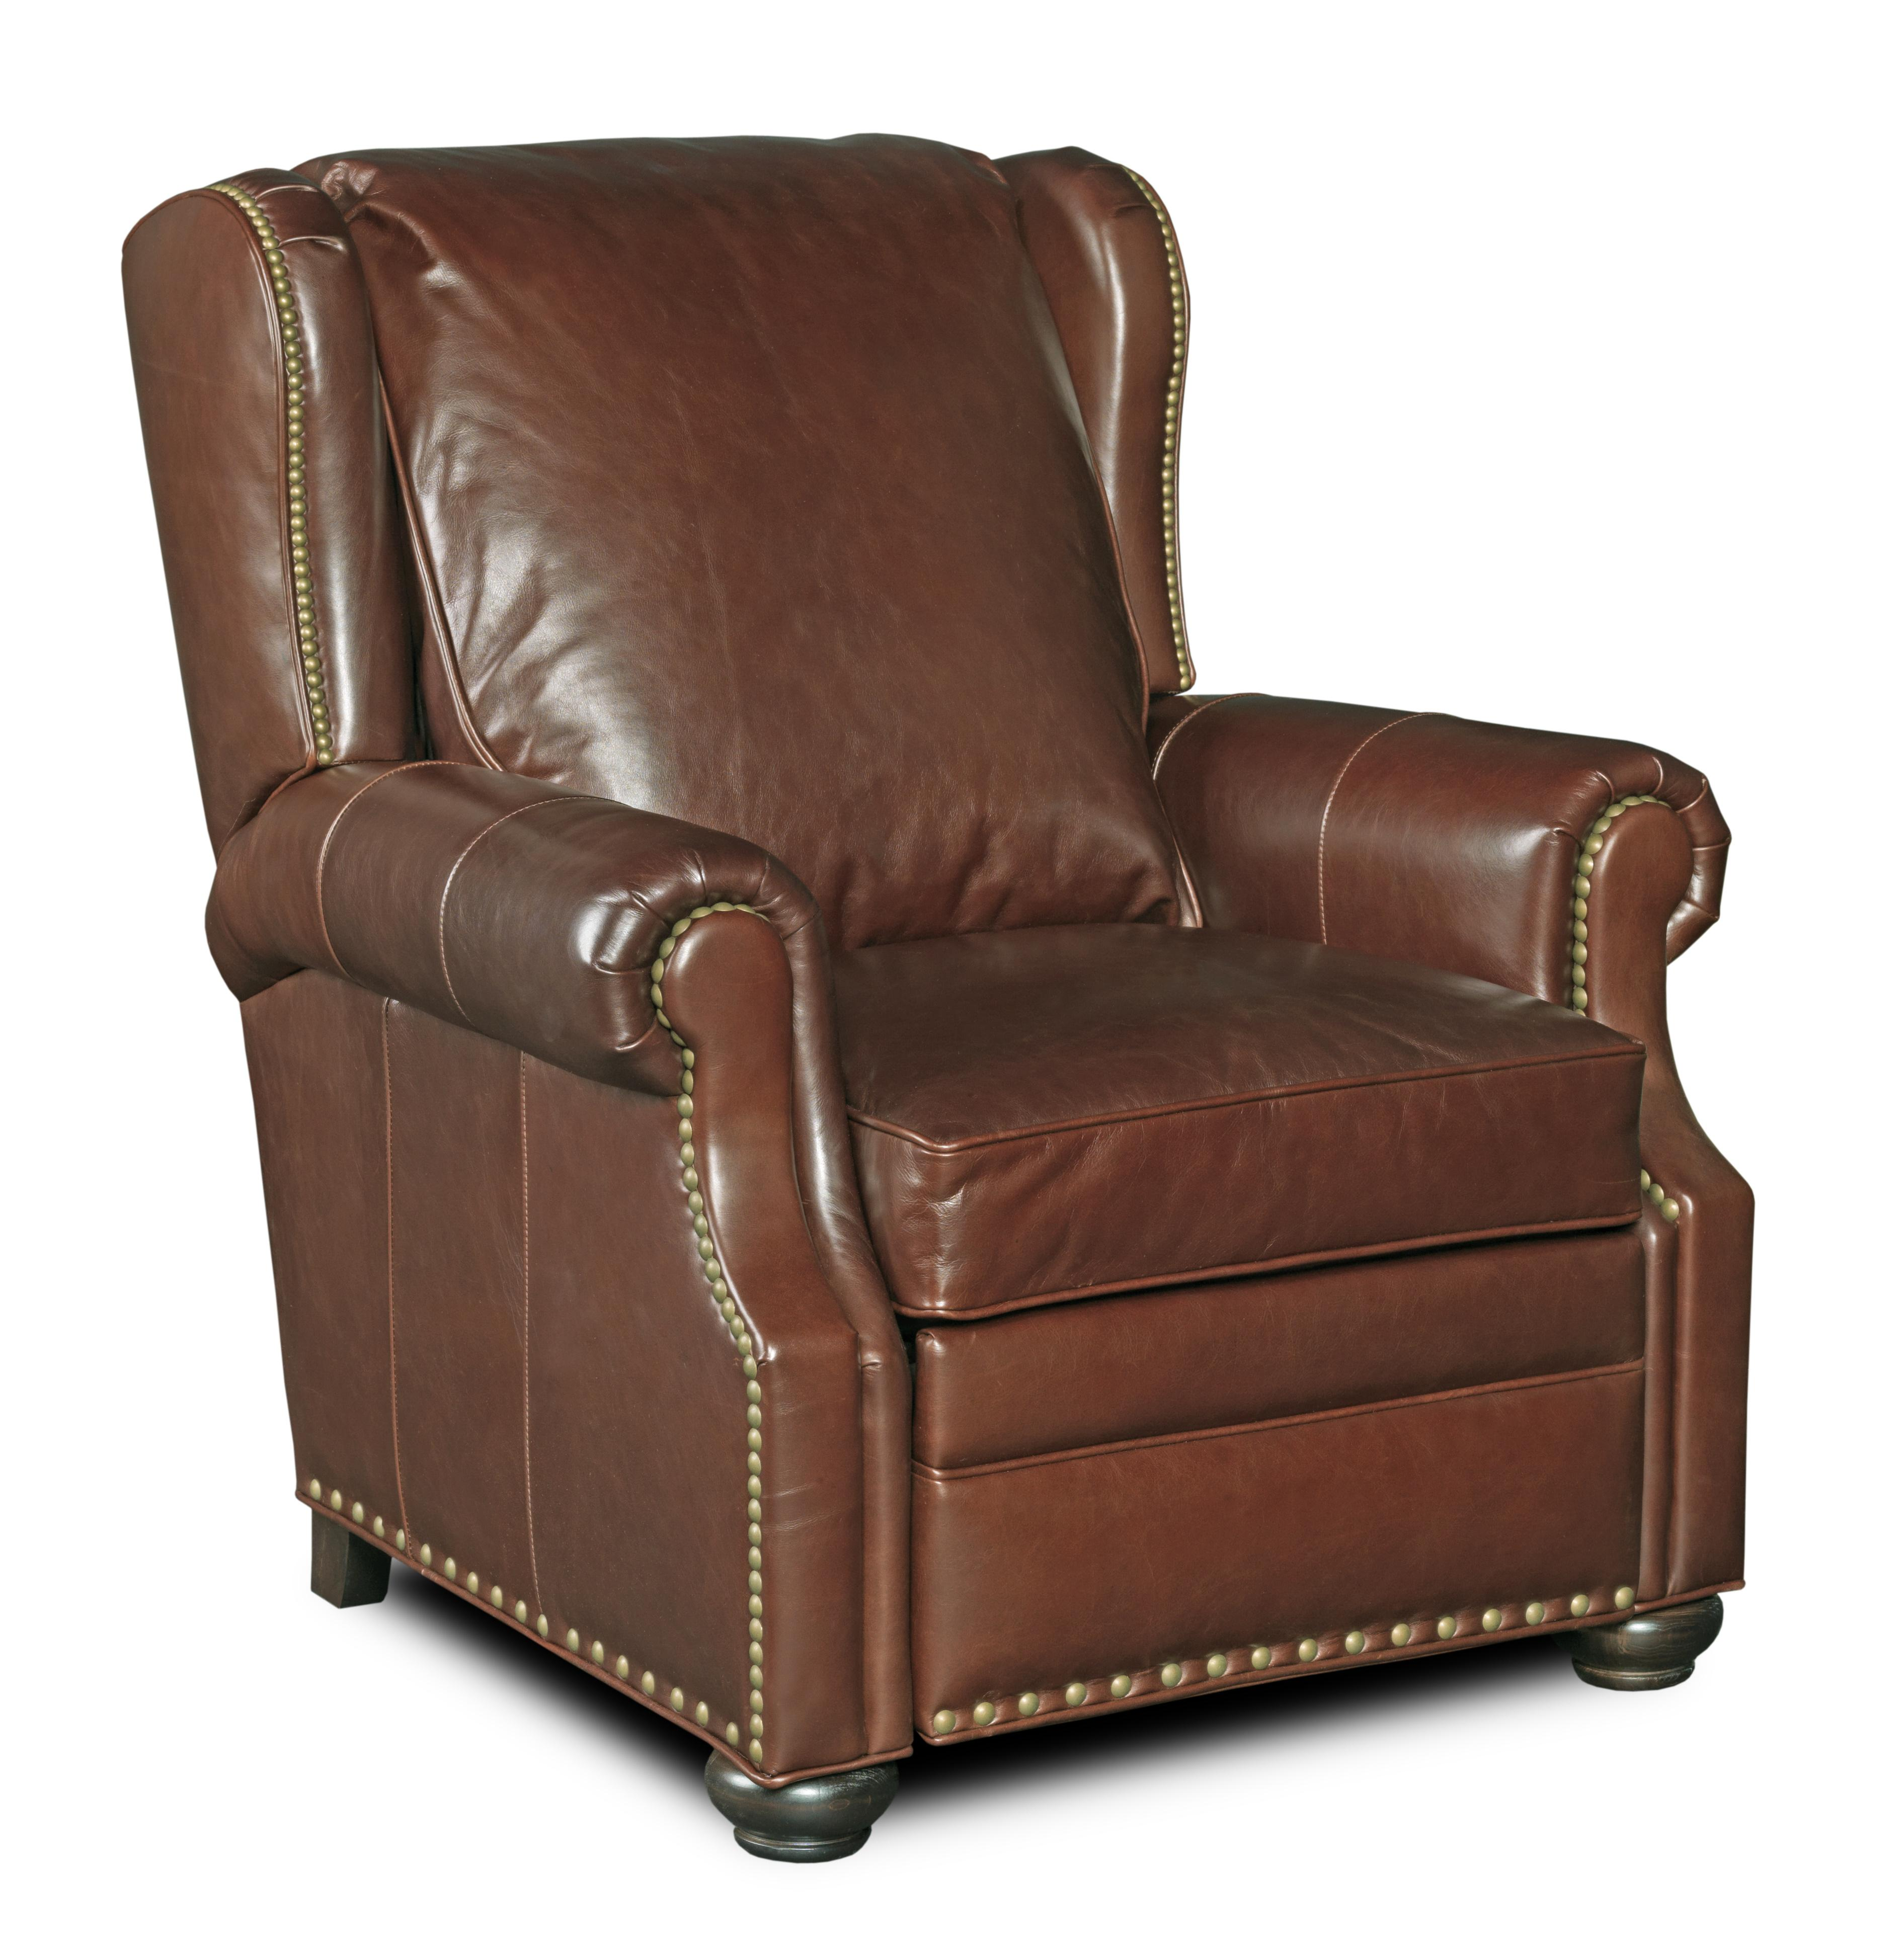 Chairs That Recline Tanner Three Way Recliner with